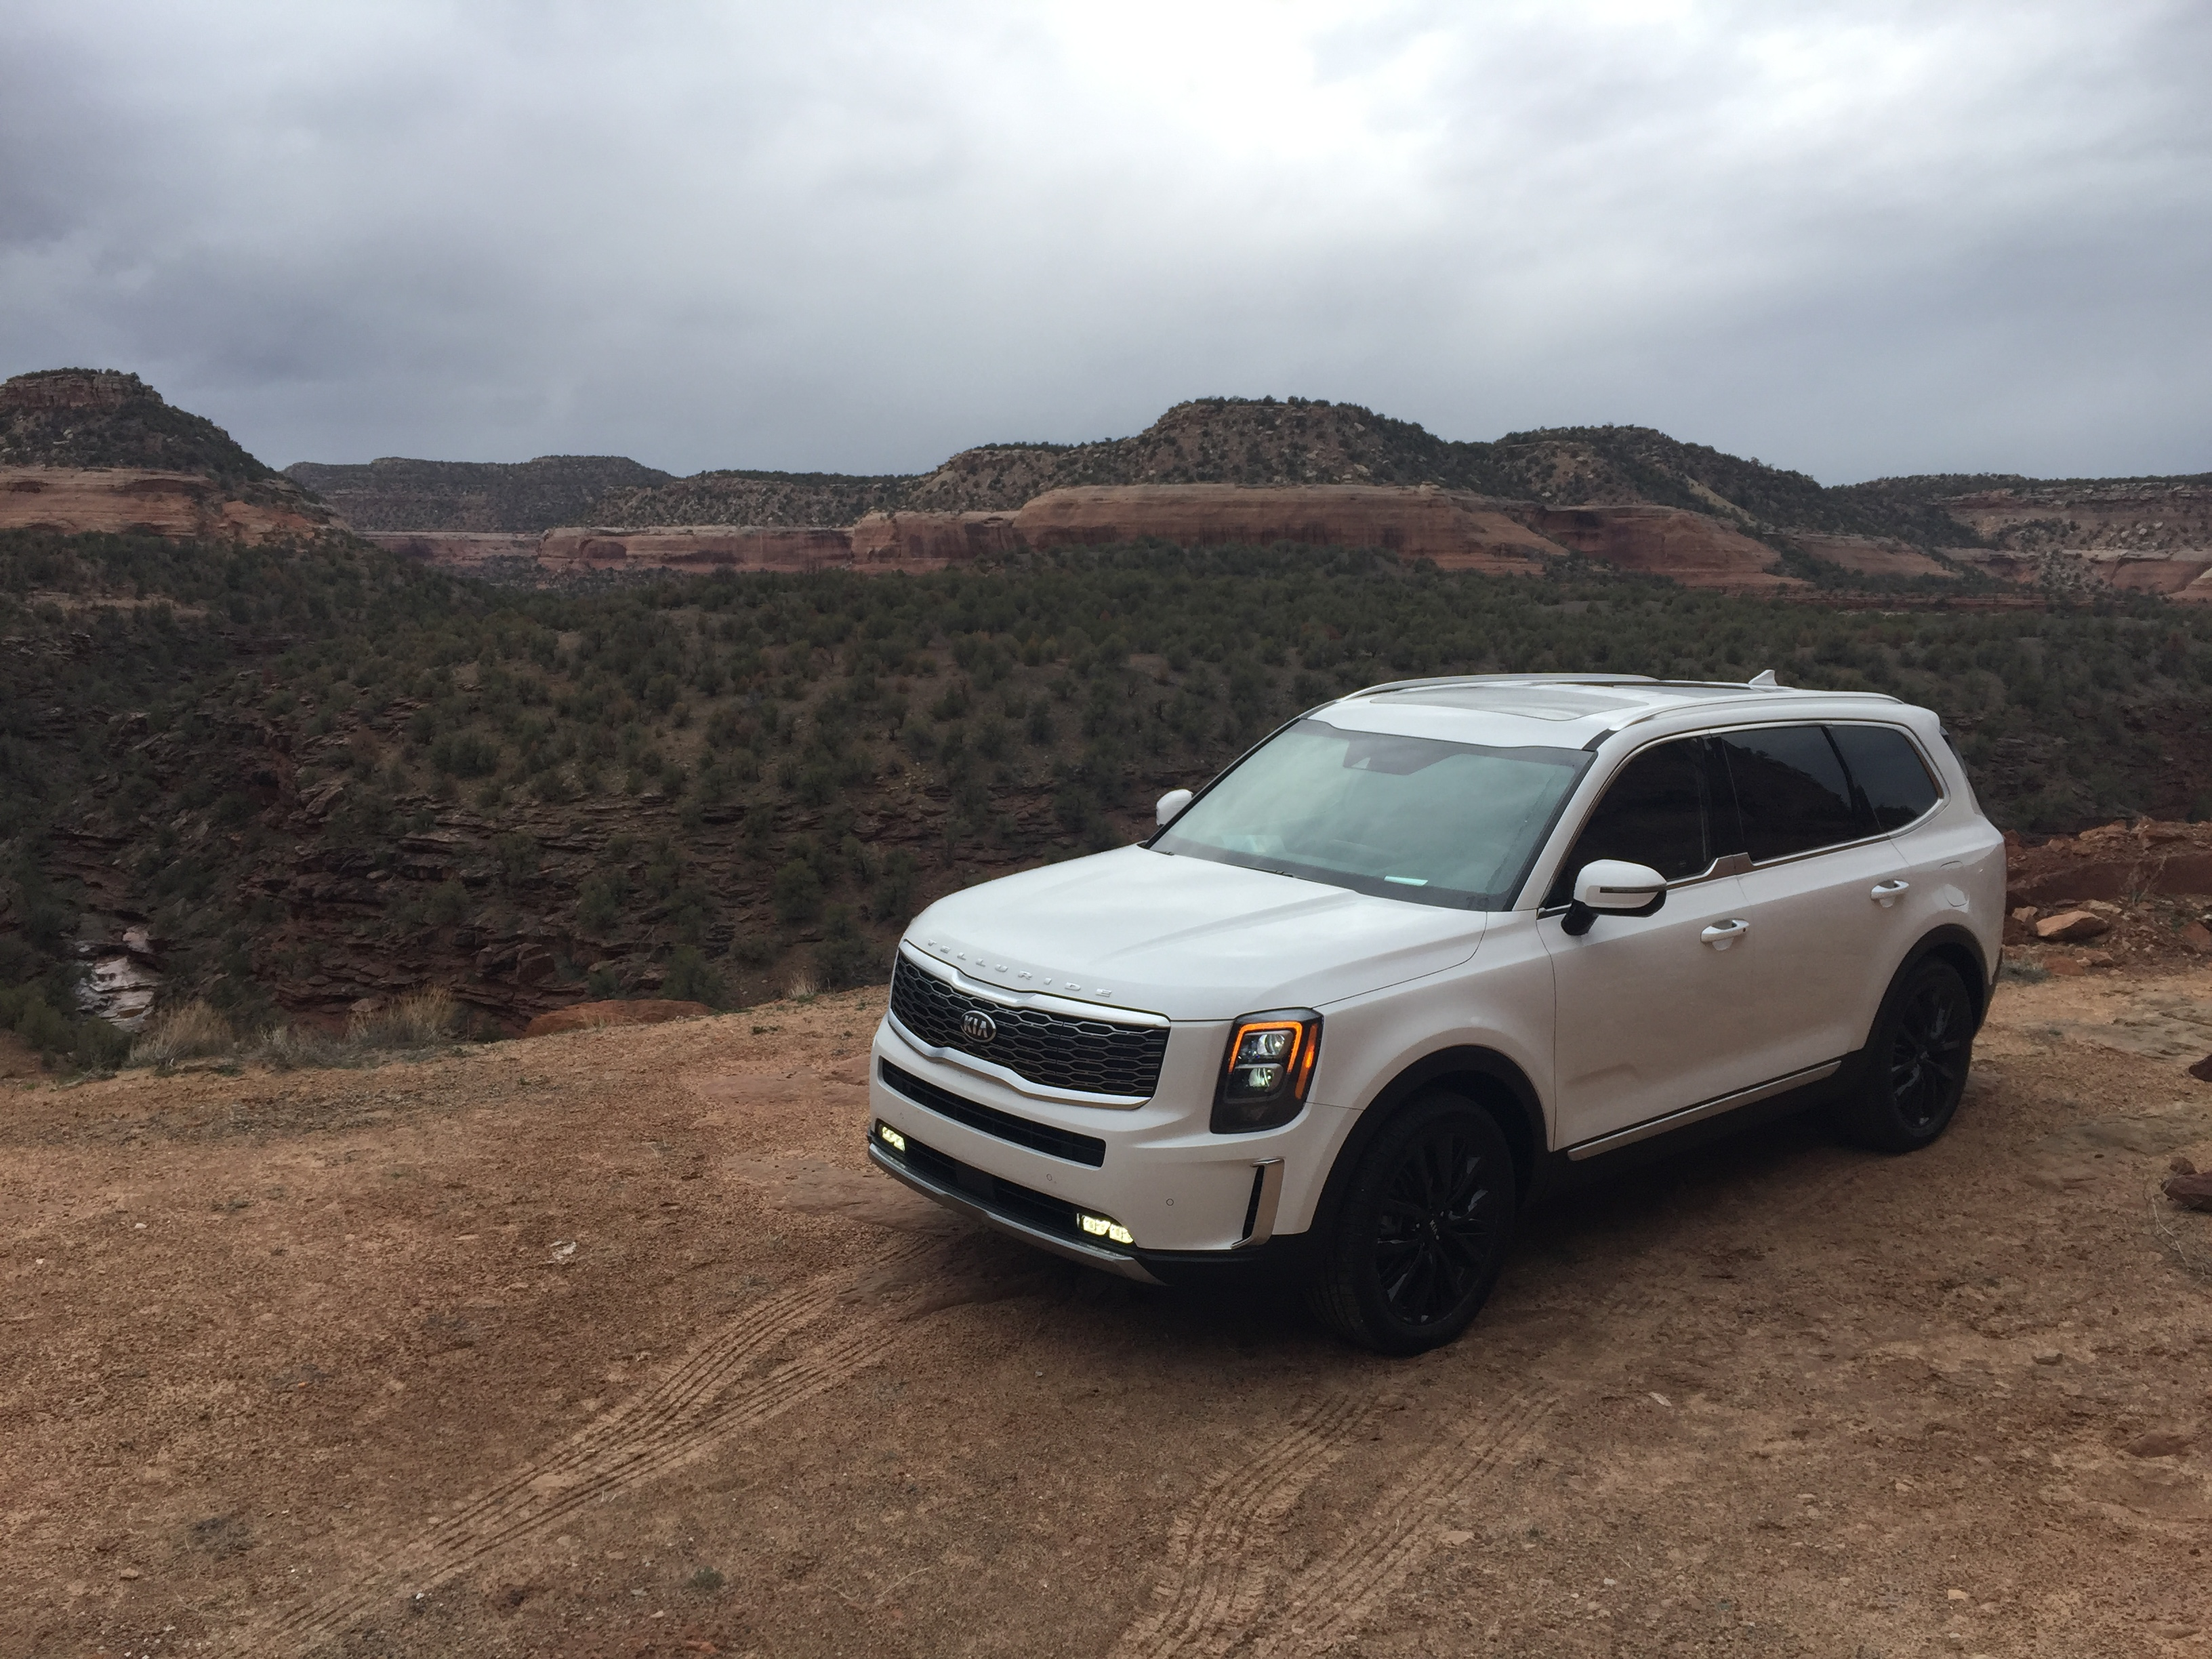 First Drive: 2020 Kia Telluride – New Segment Leader